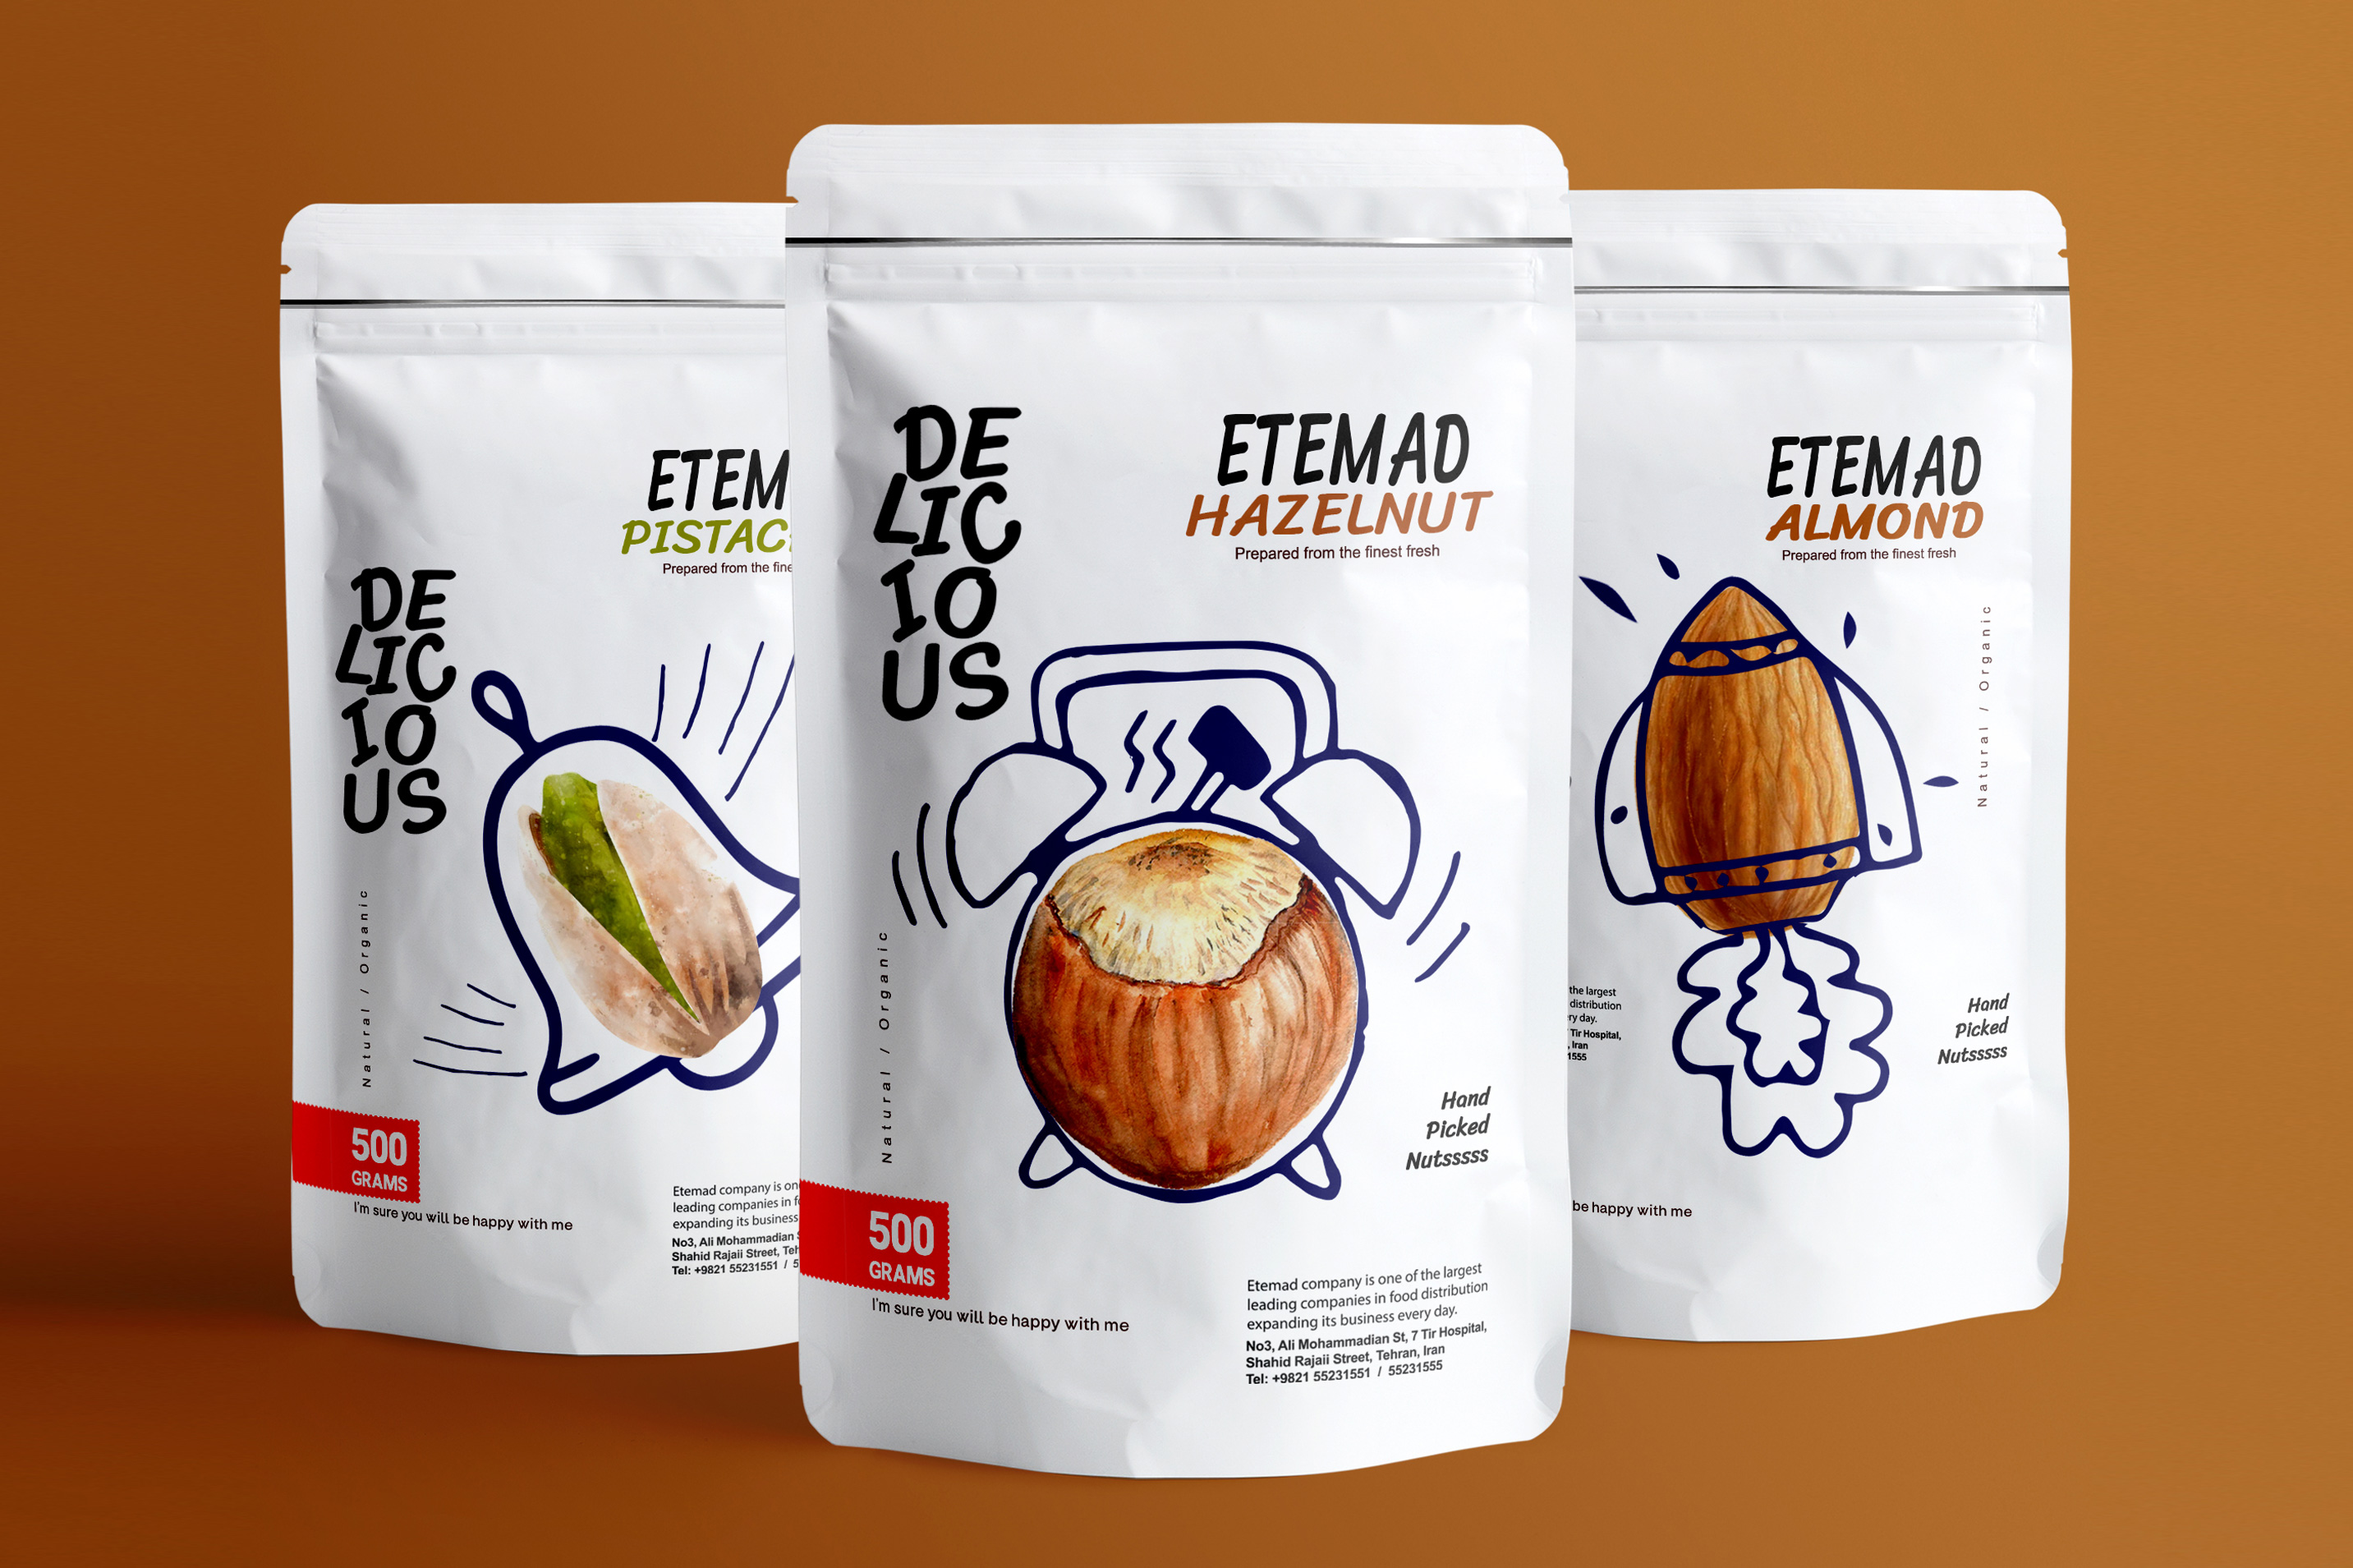 Taha Fakouri Creates New Nuts Packaging Design for Etemad Nuts